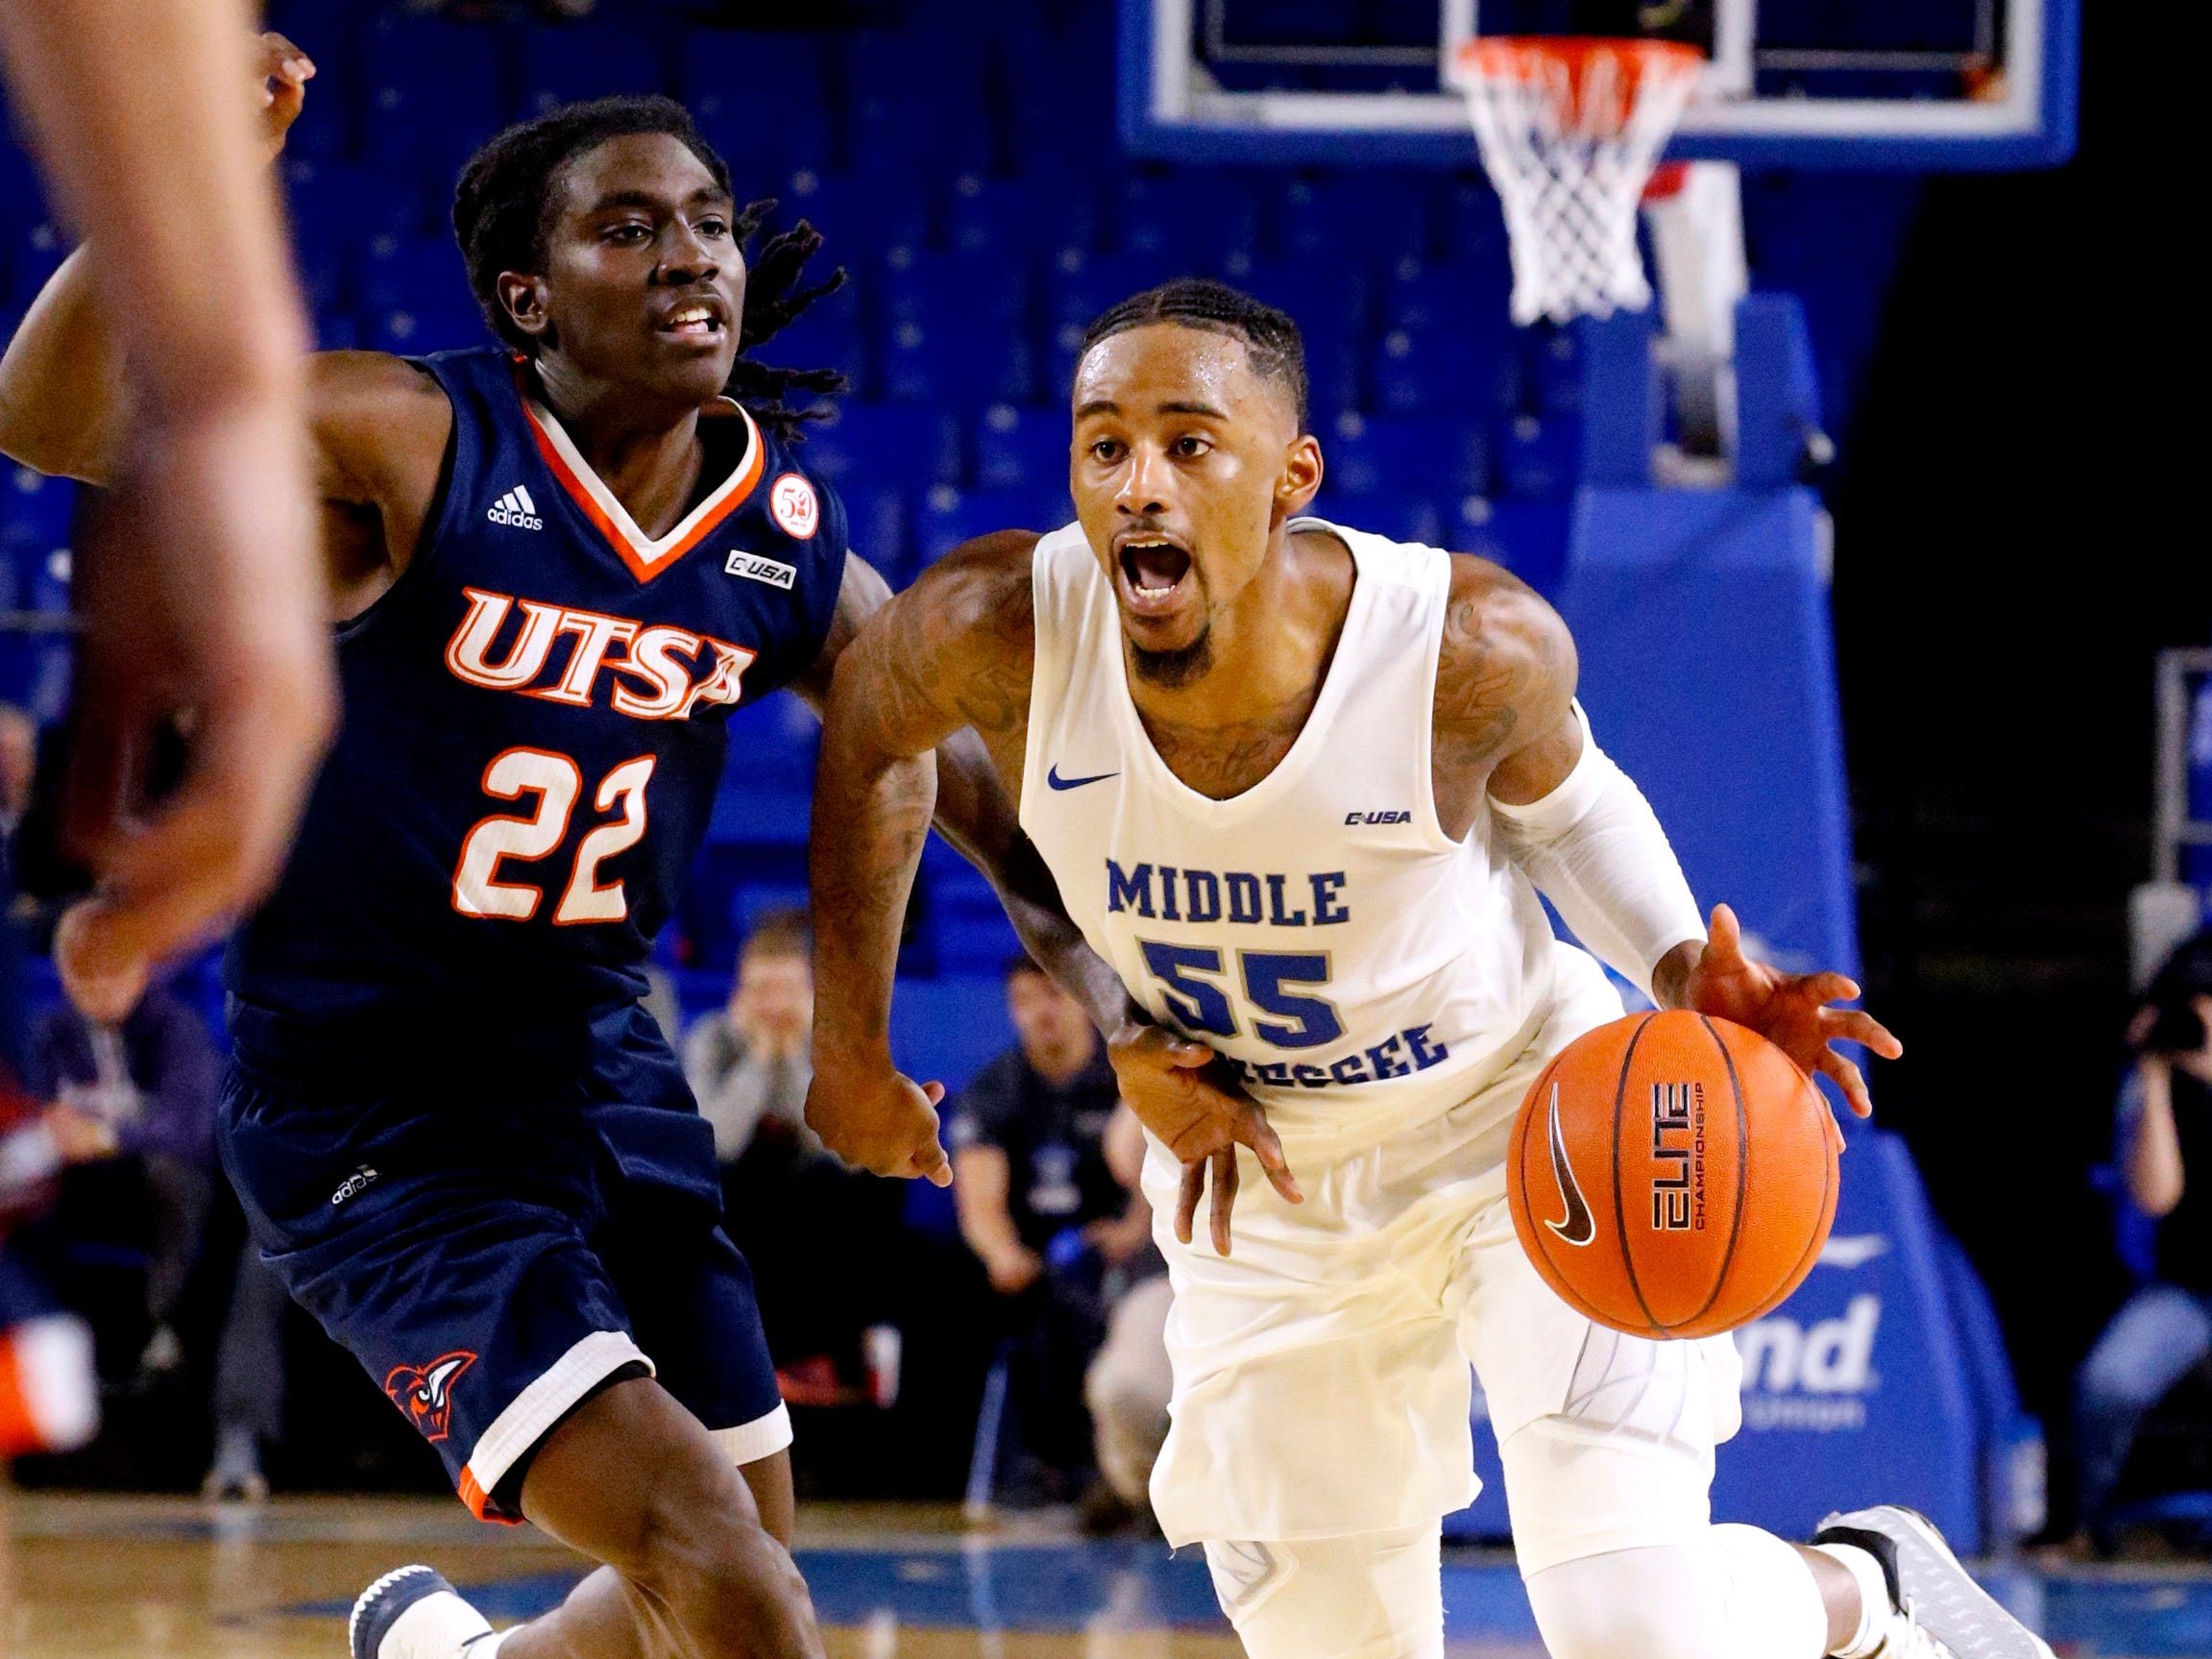 MTSU's guard Antonio Green (55) brings the ball down the court as UTSA's guard Keaton Wallace (22) guards him on Thursday Jan. 17, 2019.